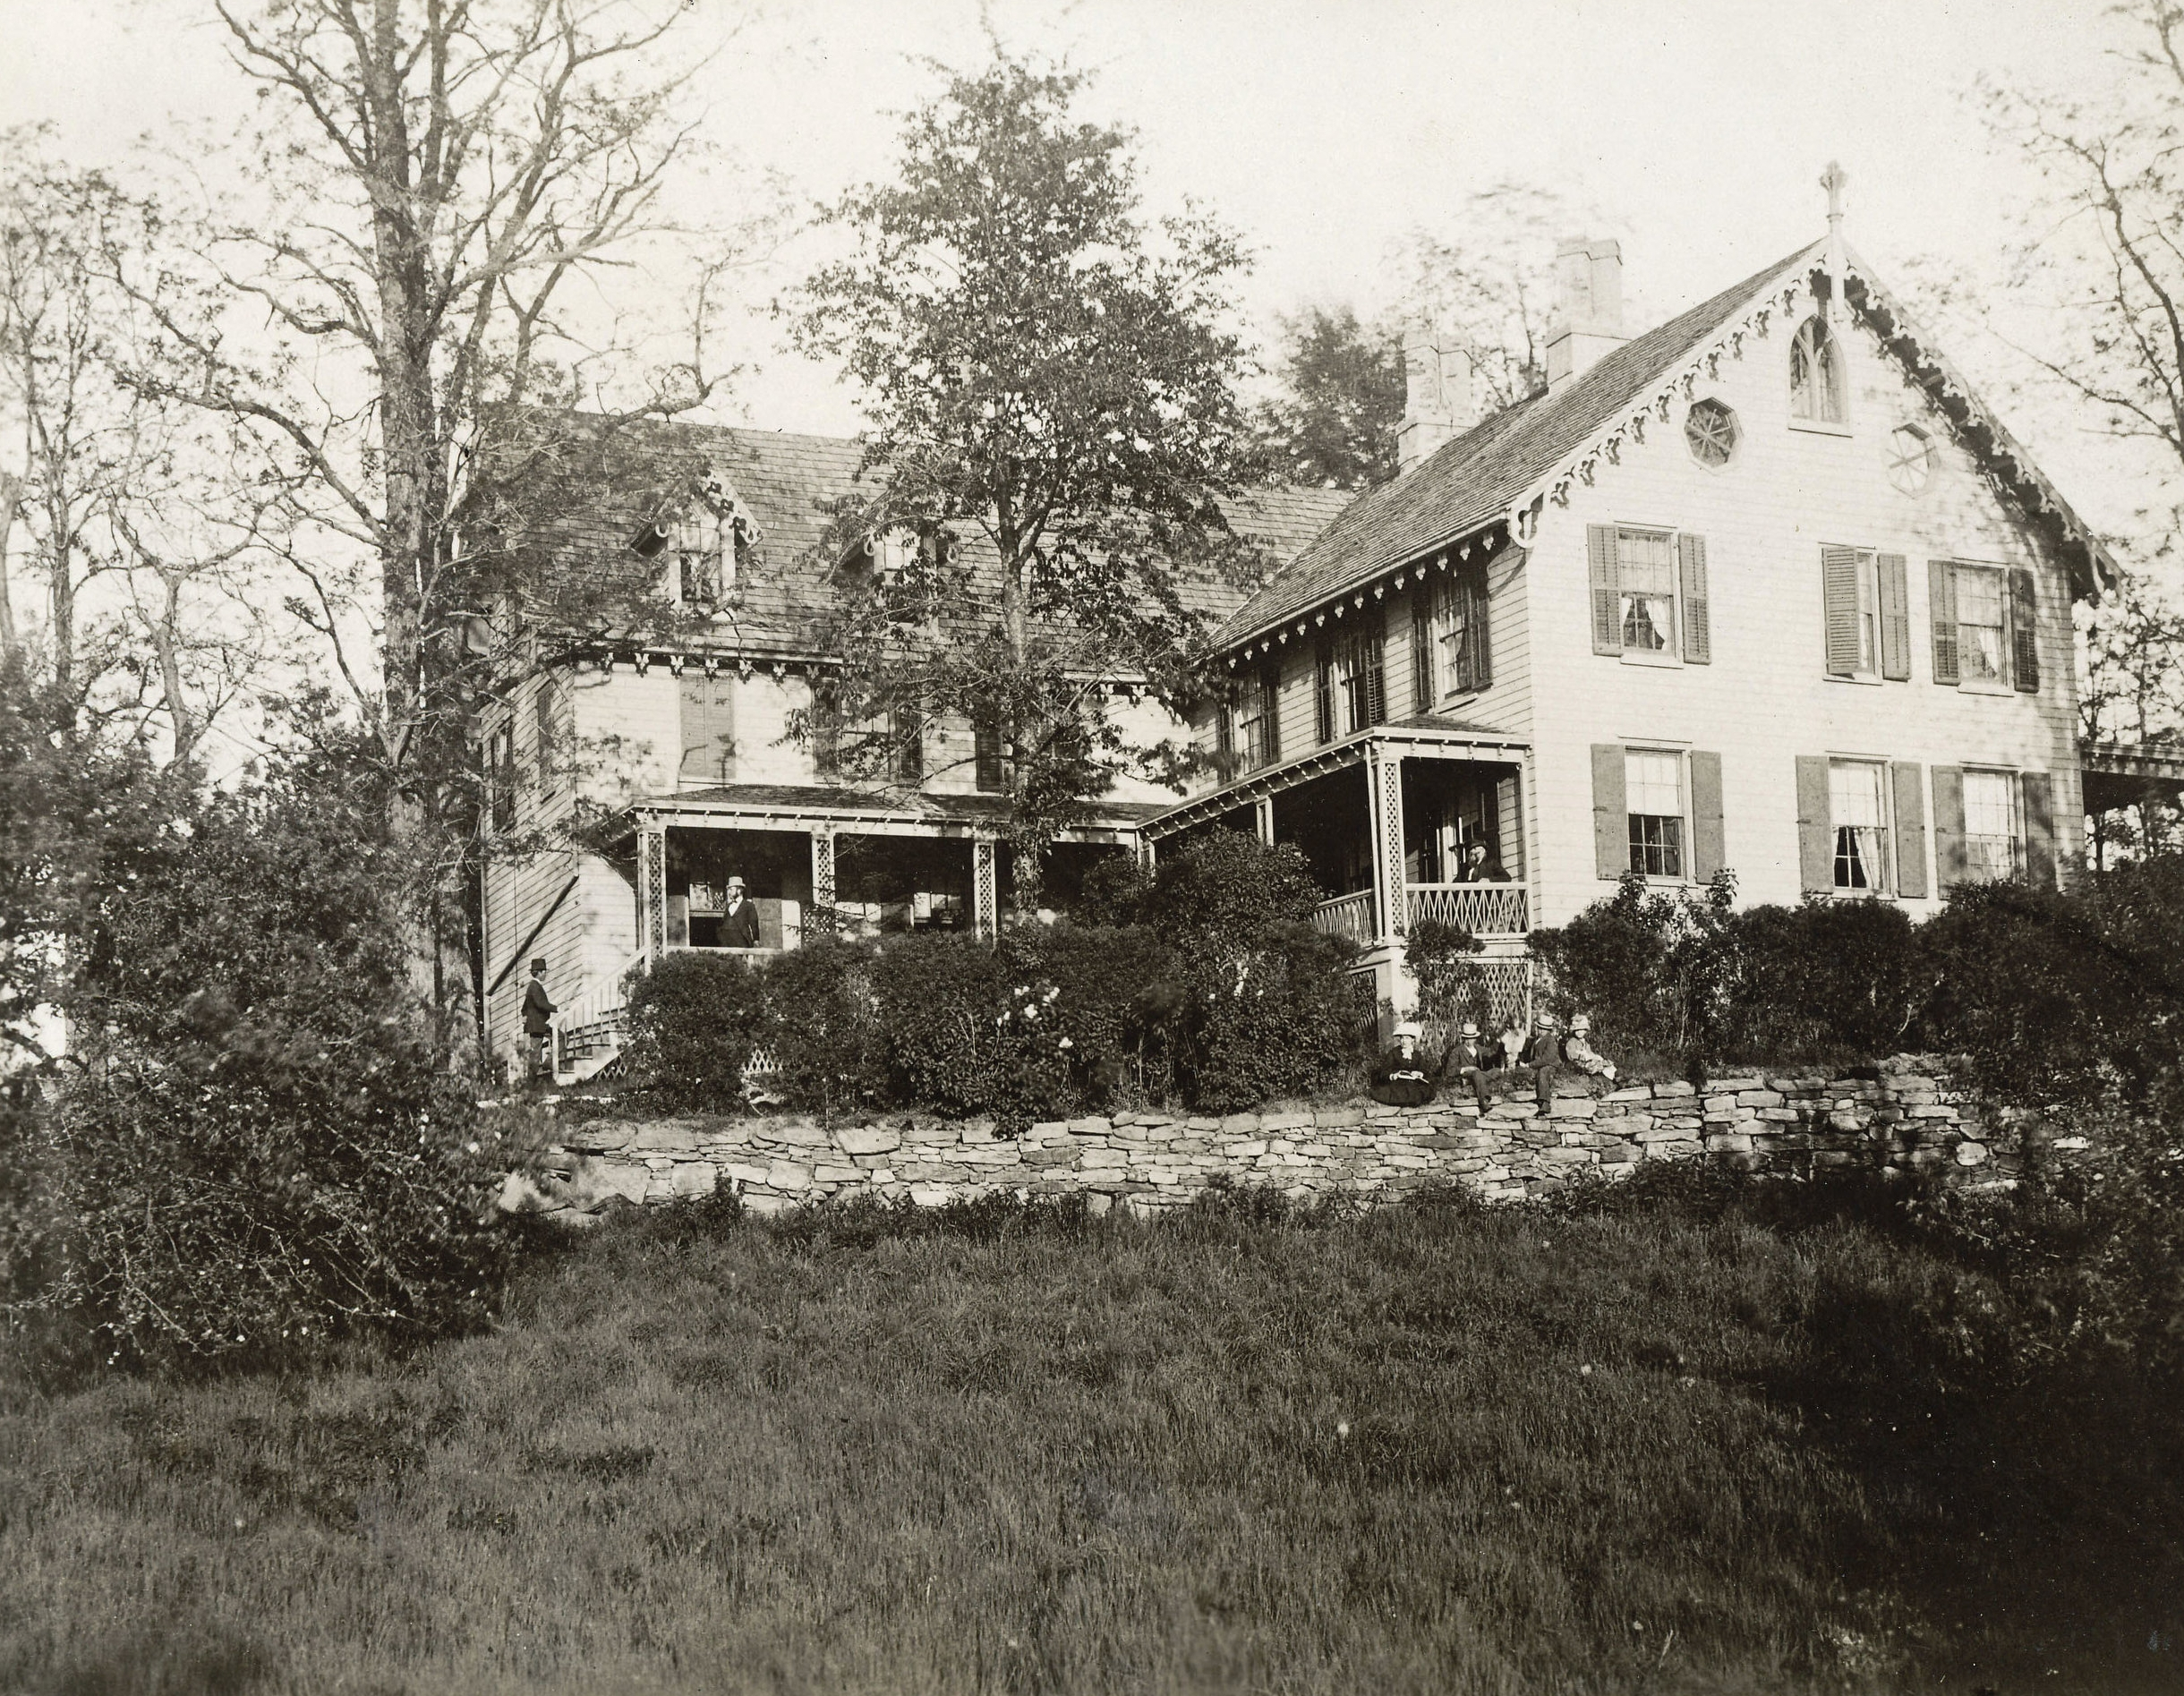 The Fish Family enlarged the Griffin-Fish house and lived there from 1850 to 1920. Photo c. 1872.